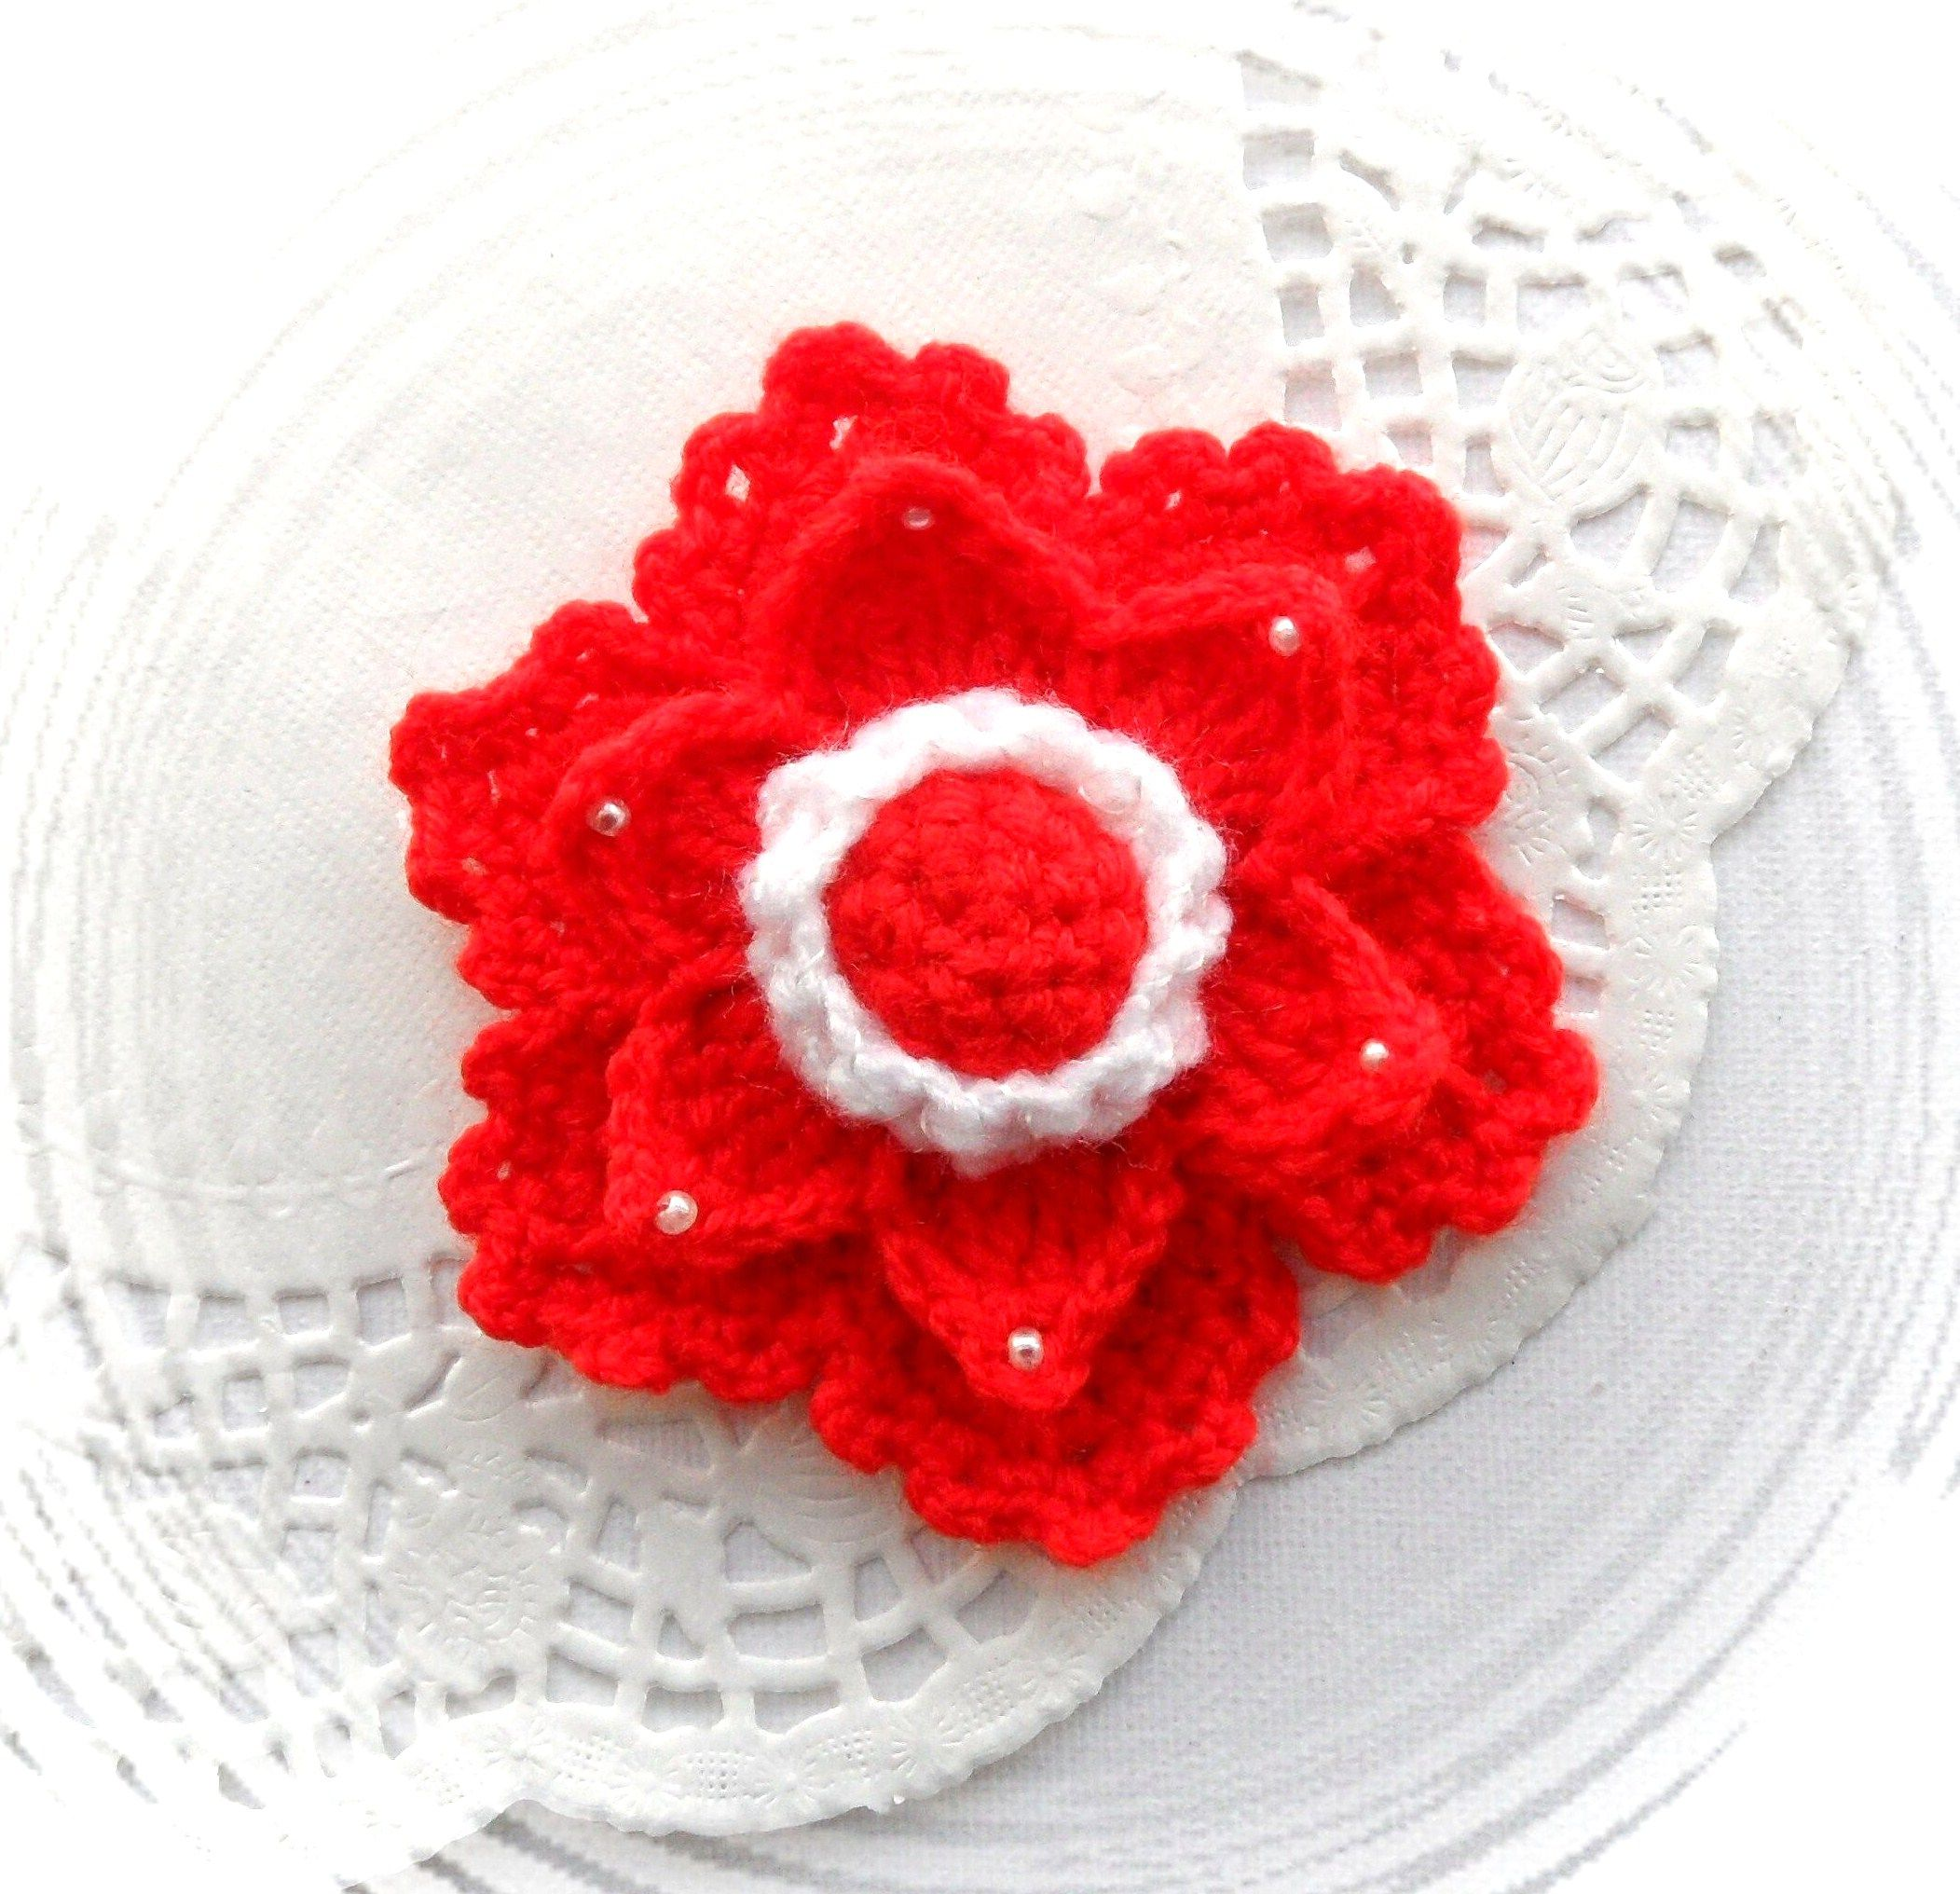 brooches etat crocheted crosetatebucuresti brooch handmadeisbetter cro broochhandmade handmade handiamade a bro pin crosetate